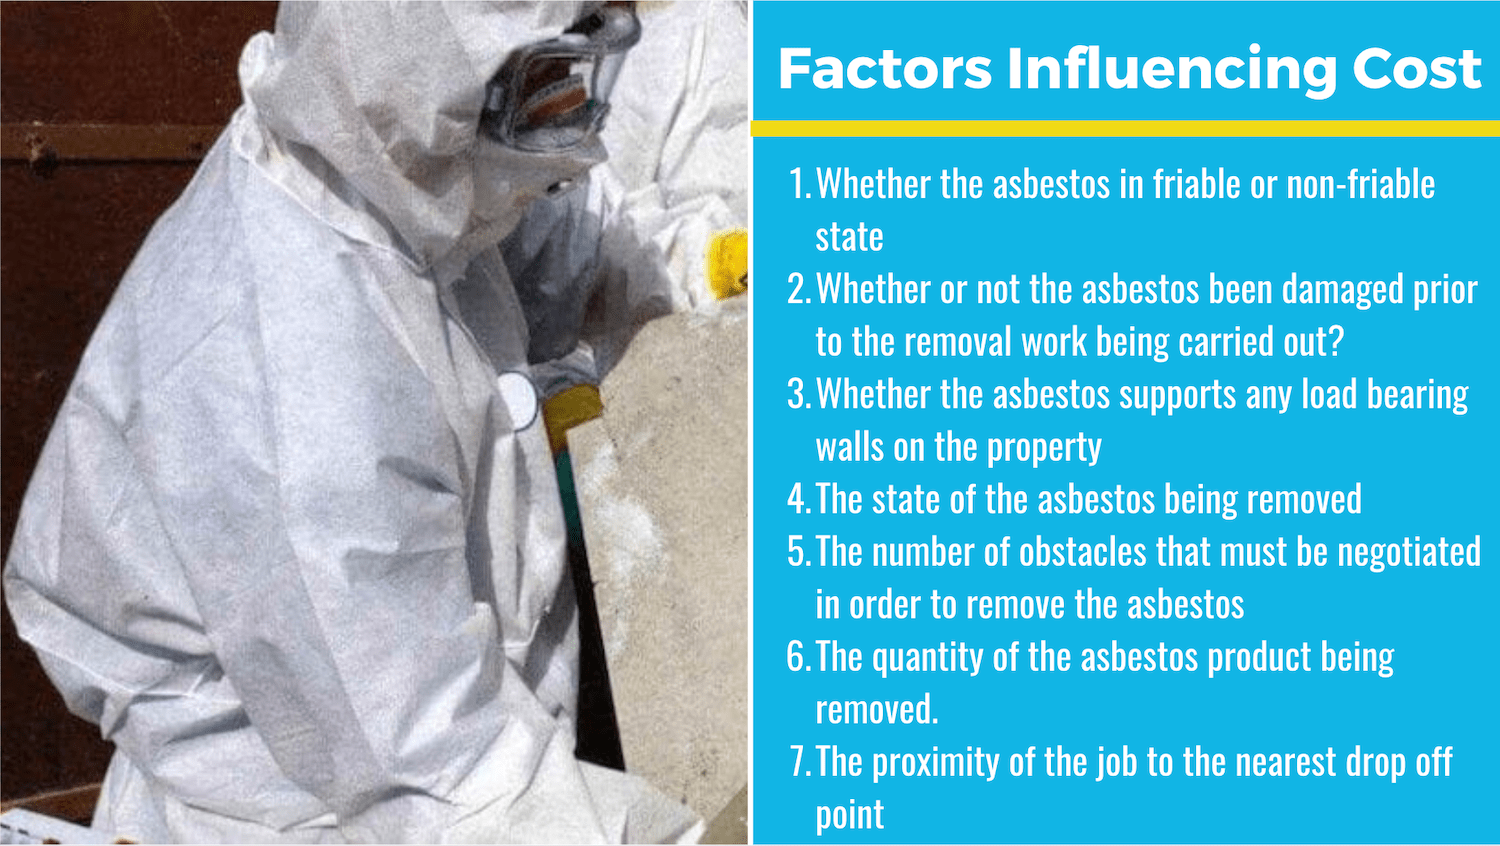 factors influencing the cost of Brisbane asbestos removal chart